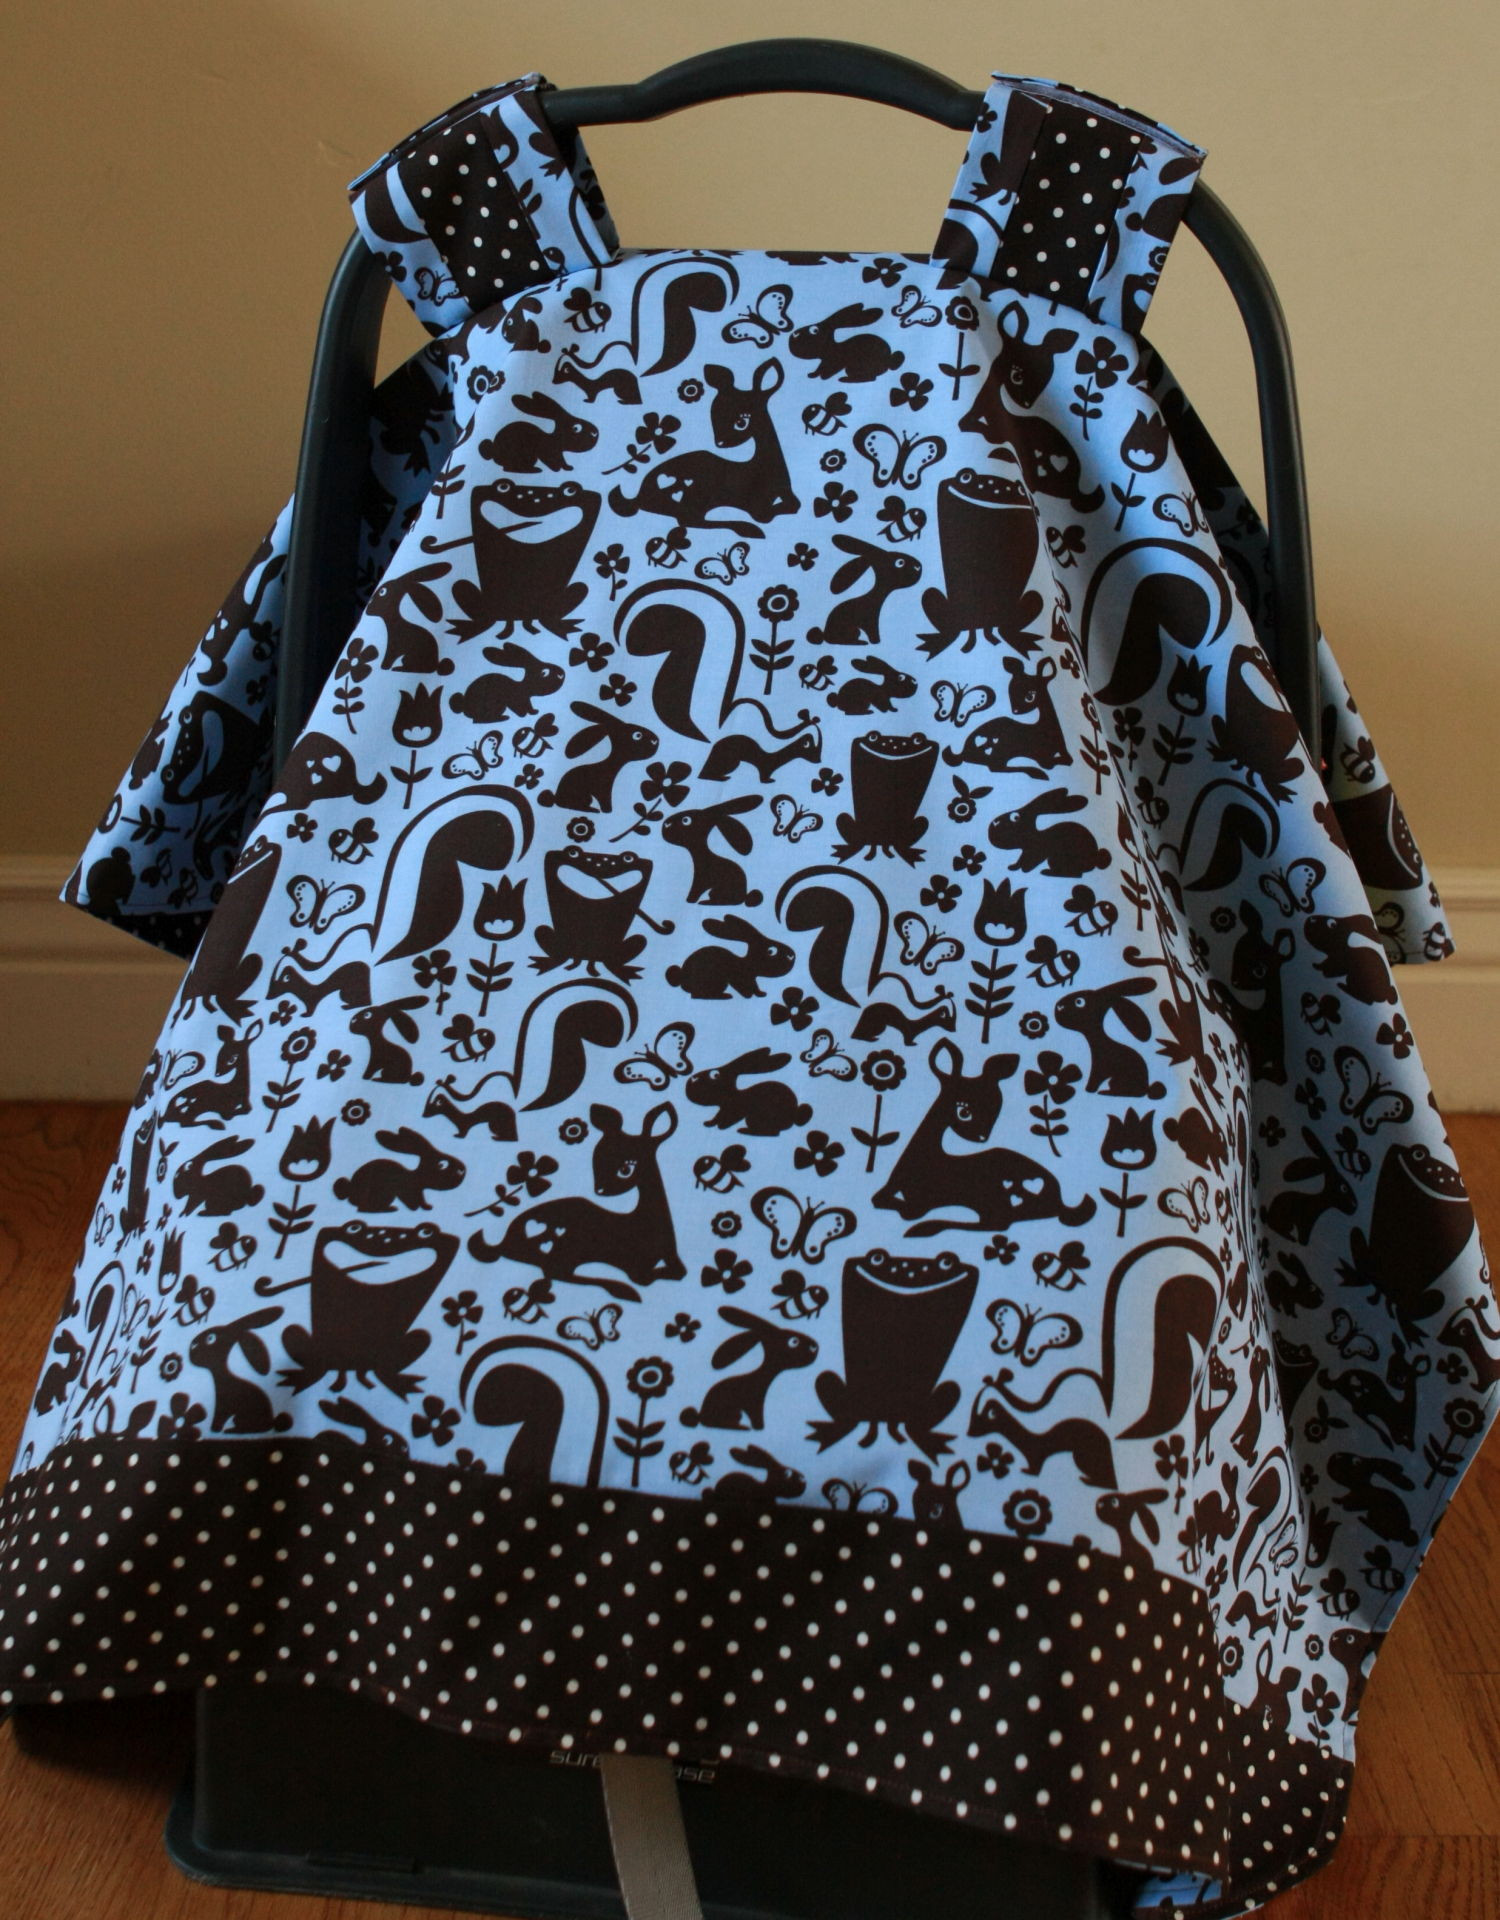 Best ideas about DIY Baby Car Seat Cover . Save or Pin car seat canopy pattern Now.